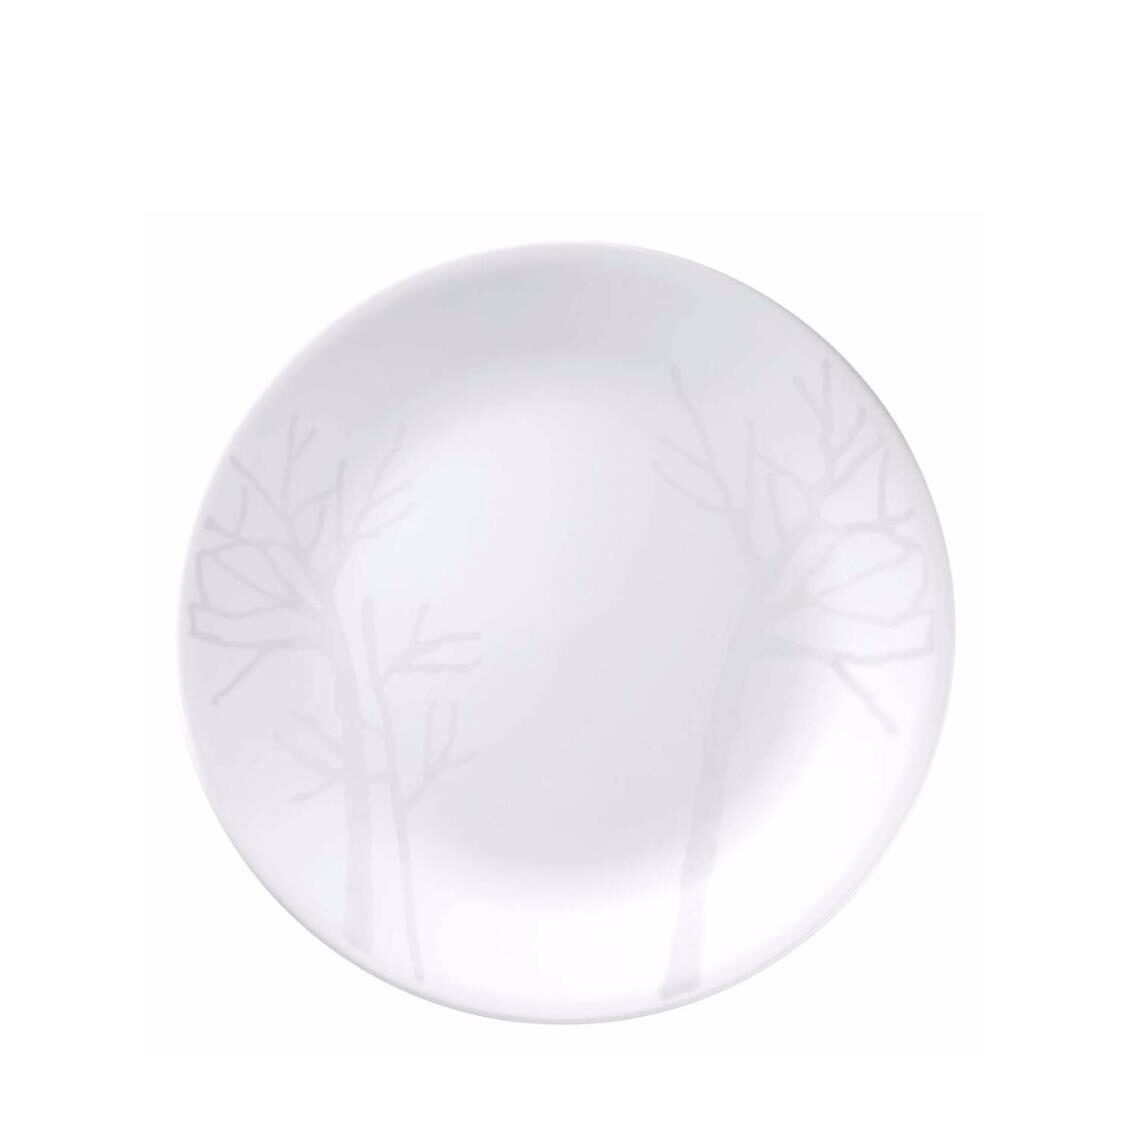 Corelle Luncheon Plate Frost